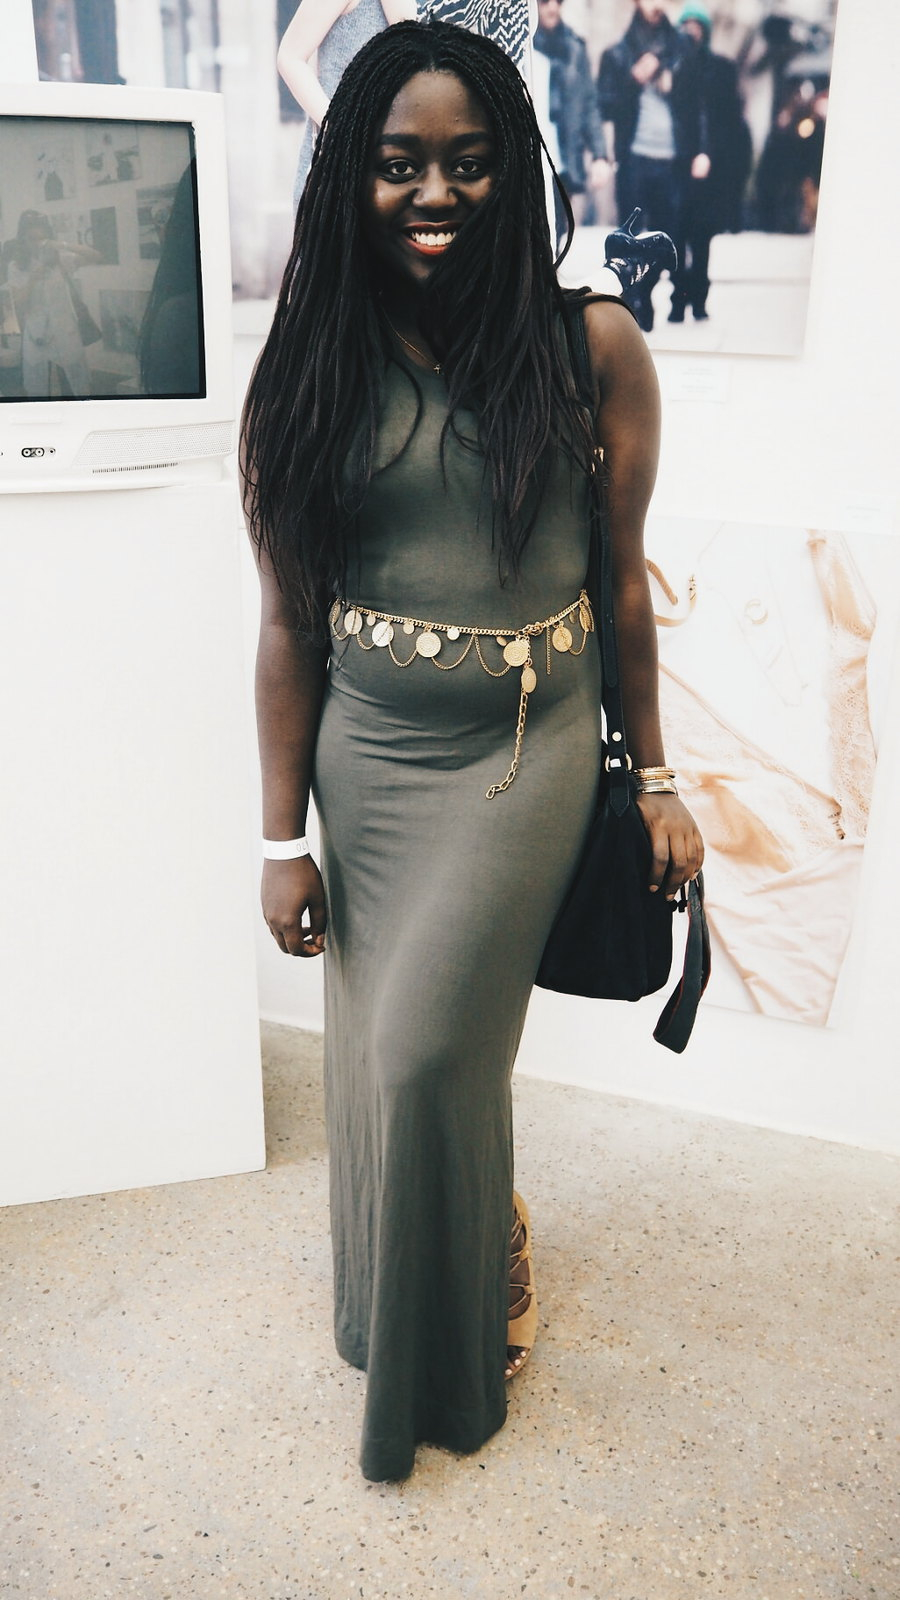 Lois Opoku Olympus PEN generation Fashion Photography Gallery Opening BERLIN